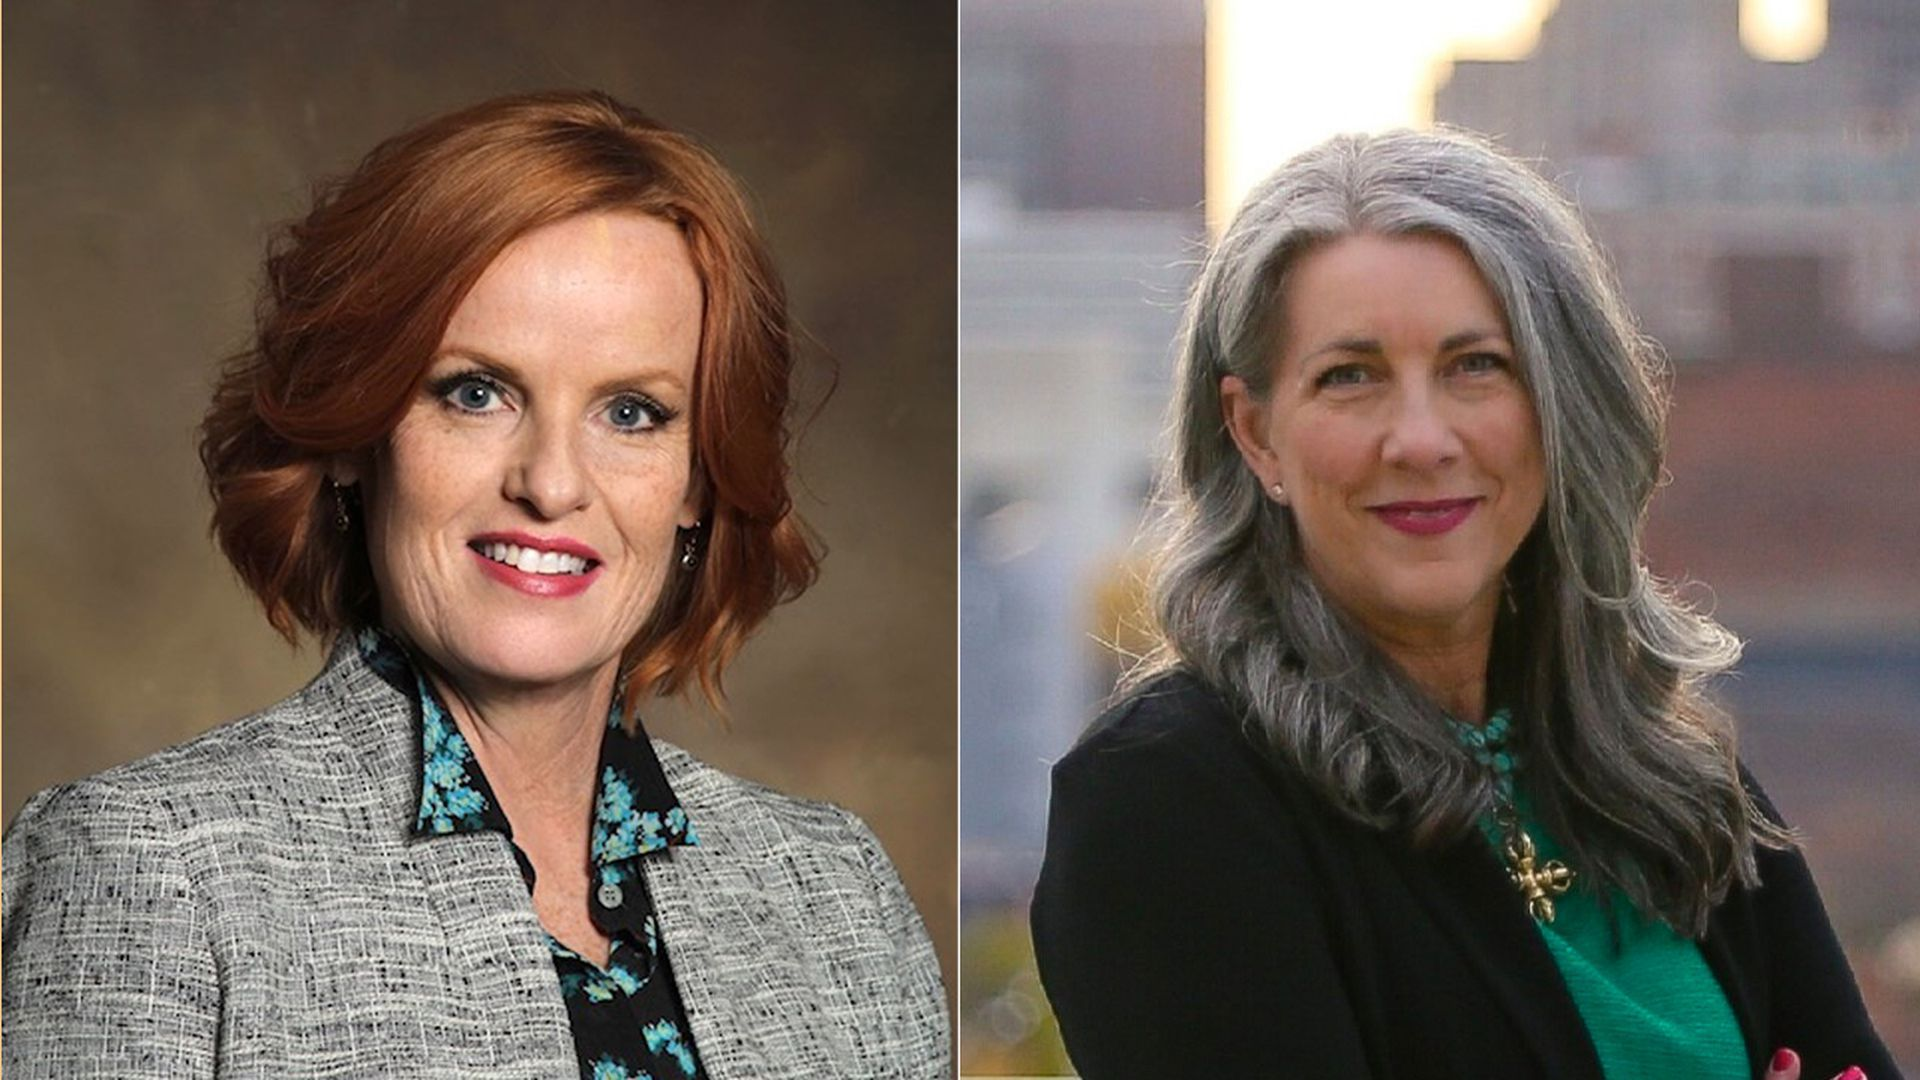 Laura Roan (left) and Kimberly Graham (right), both two candidates who recently announced they're running for Polk County attorney.